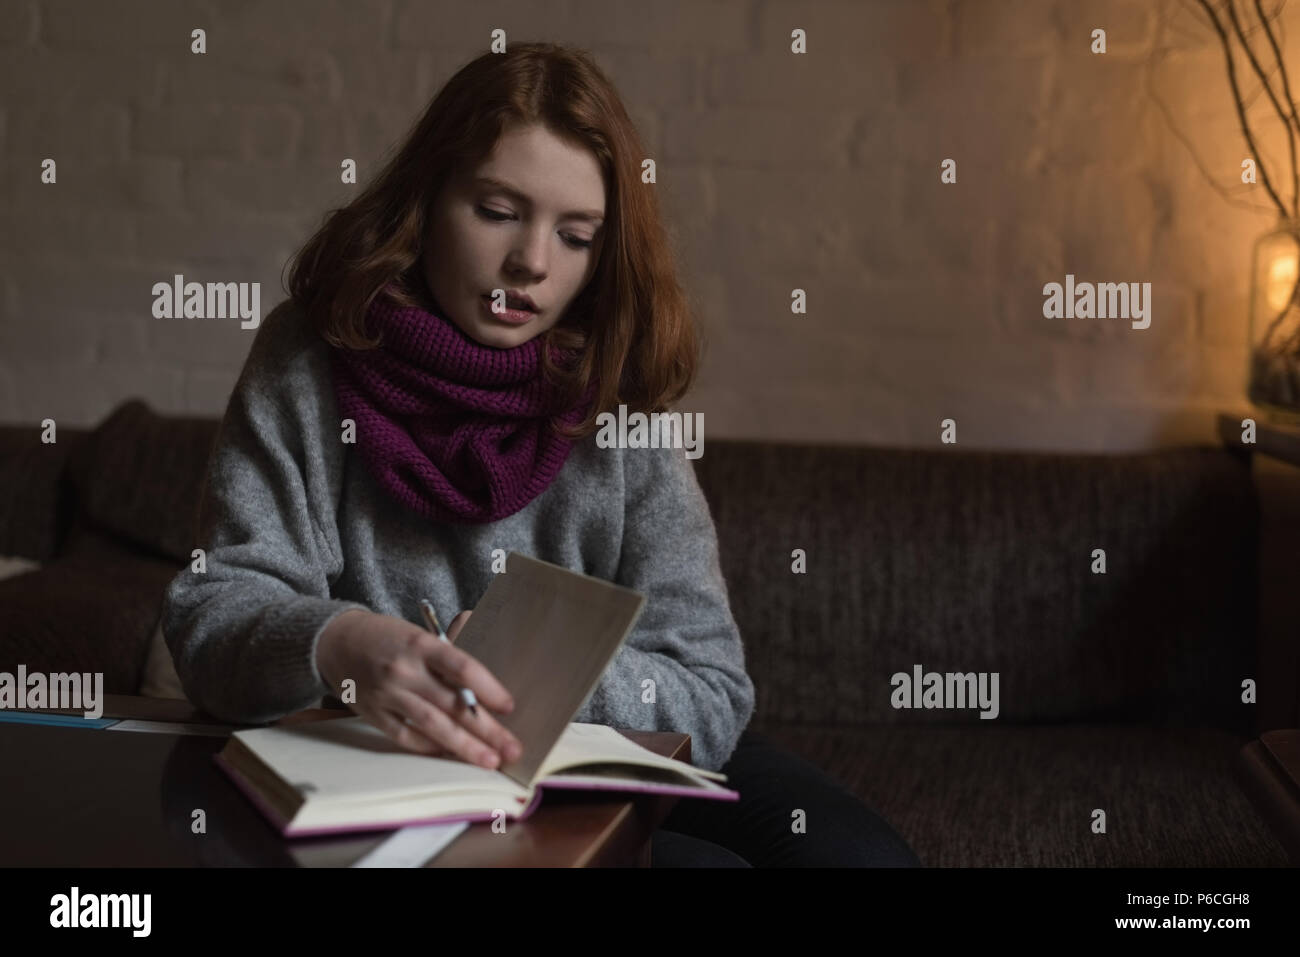 Woman writing note on diary in living room - Stock Image